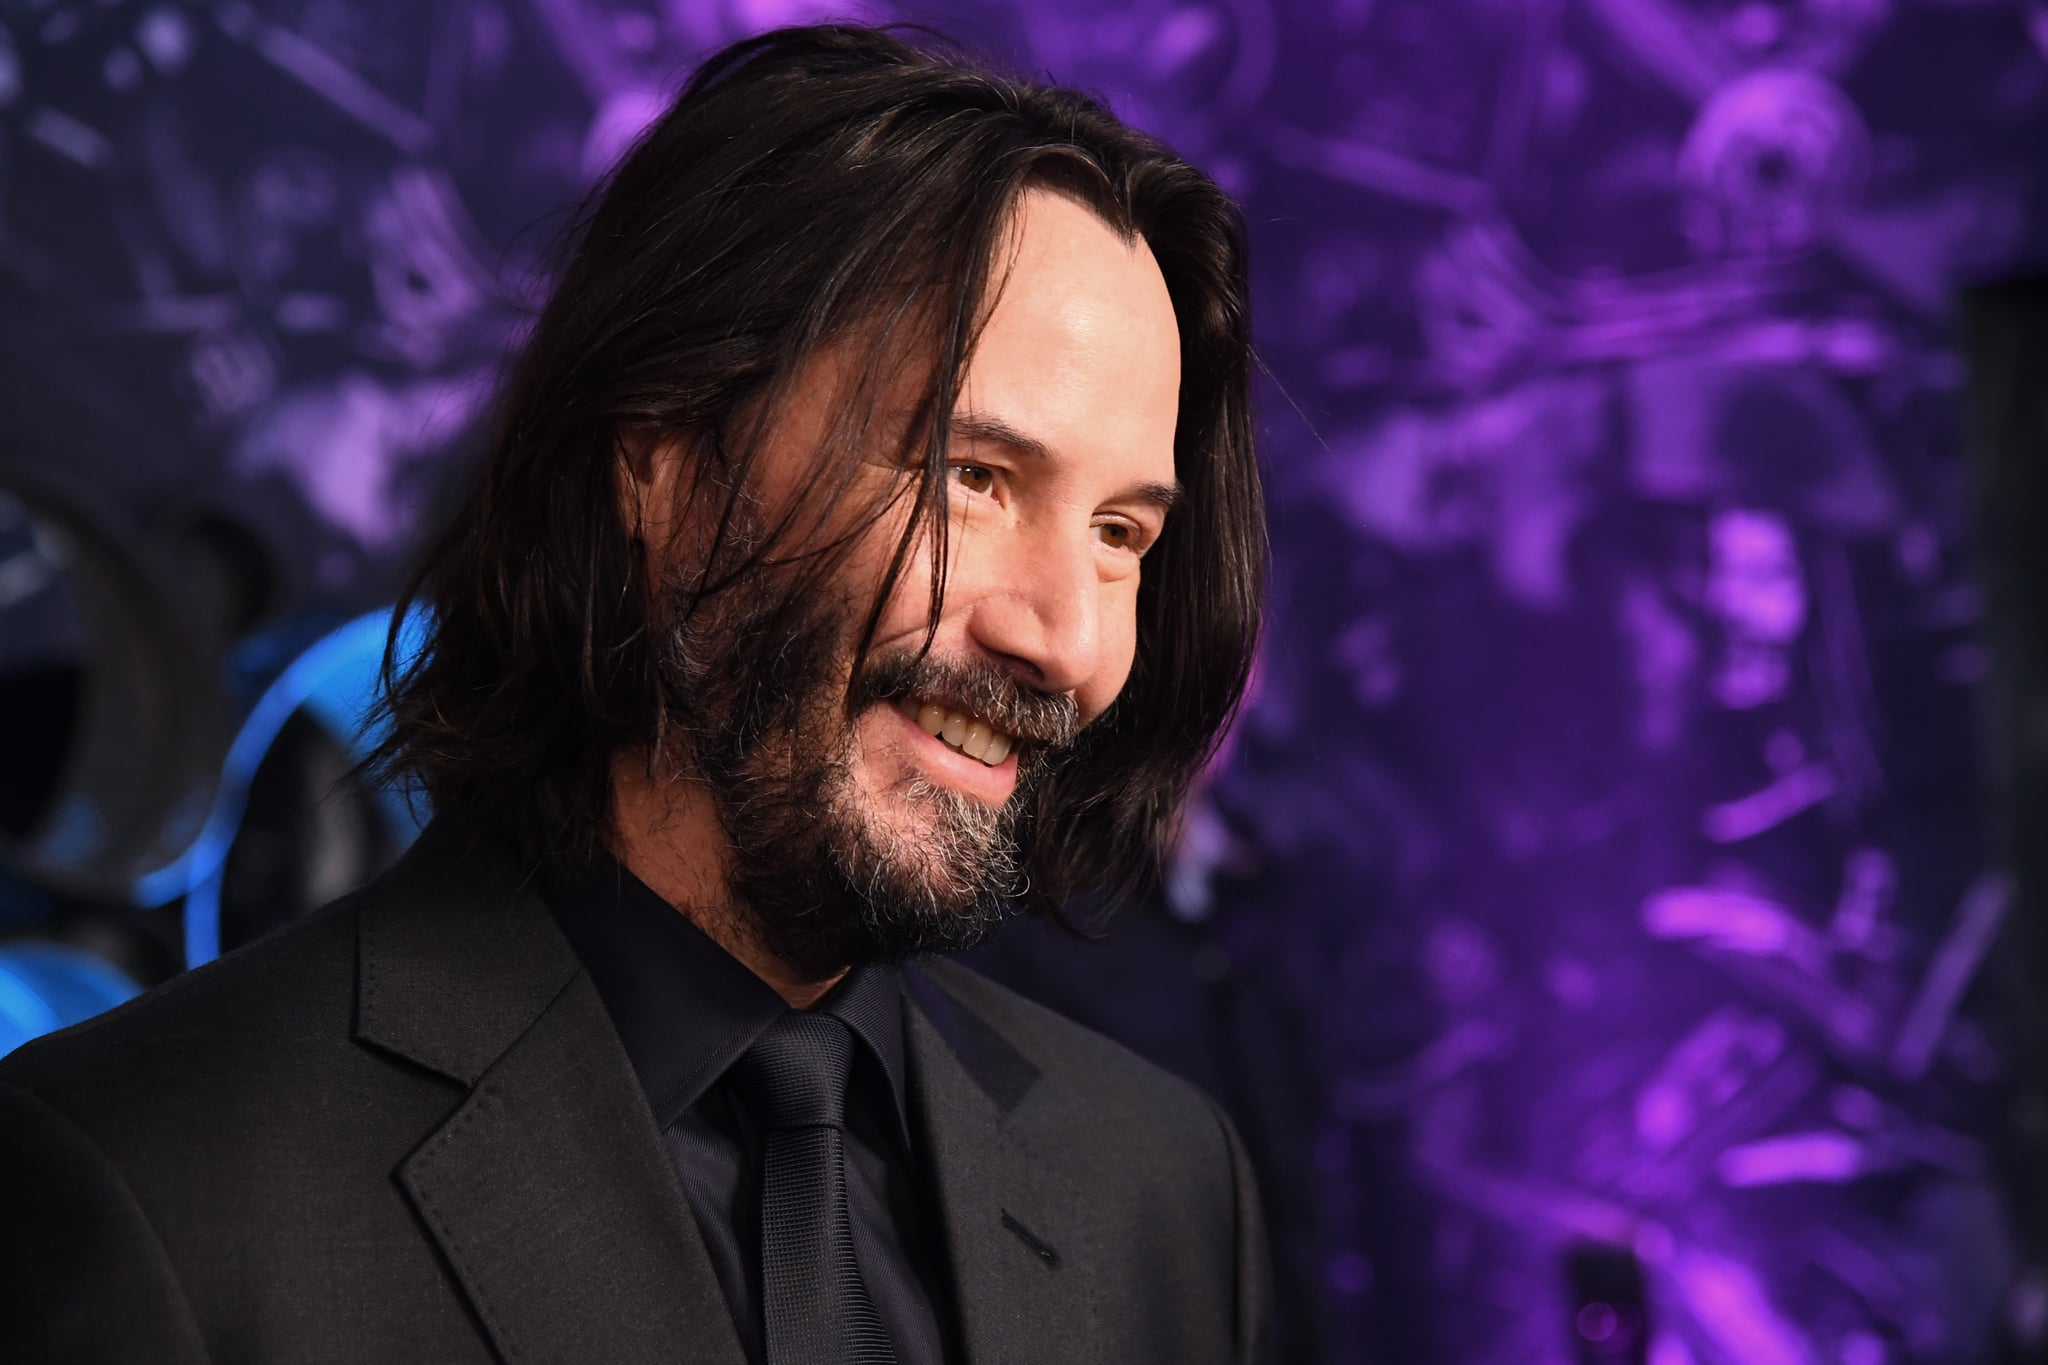 LONDON, ENGLAND - MAY 03: Keanu Reeves attends the John Wick special screenings at Ham Yard Hotel on May 03, 2019 in London, England. (Photo by Dave J Hogan/Getty Images for Lionsgate )